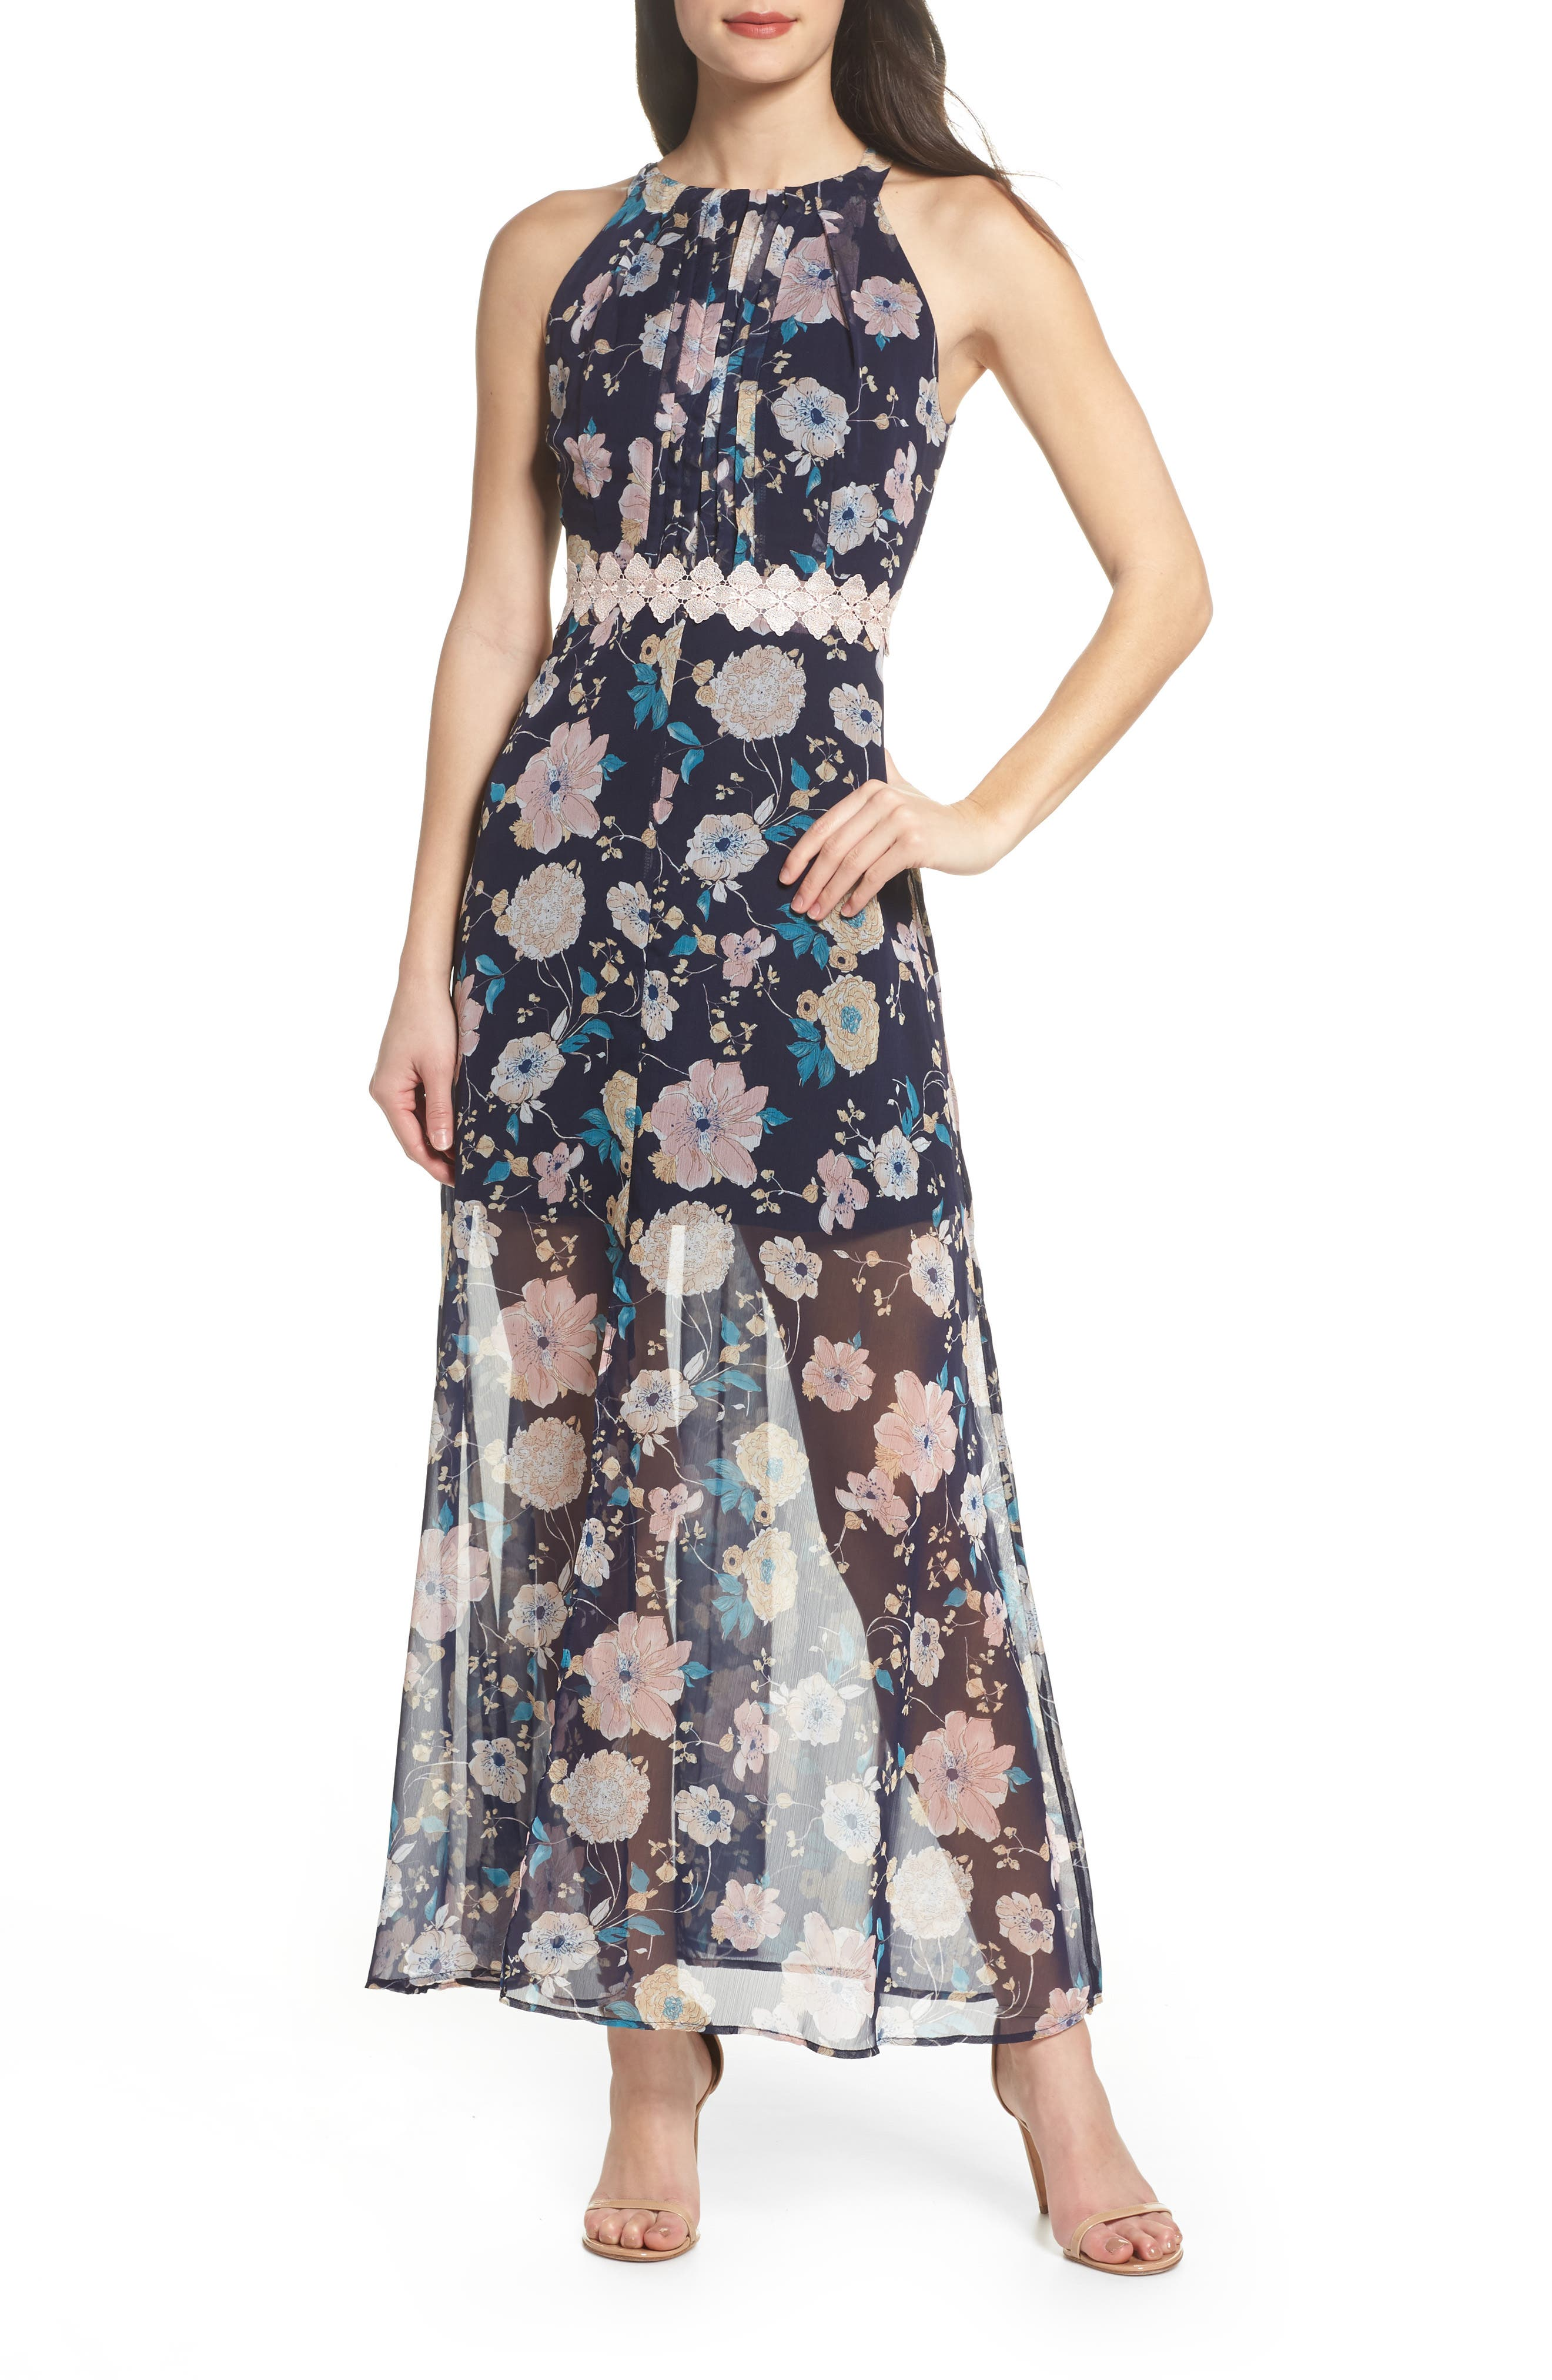 Brylee Floral Print Maxi Dress,                         Main,                         color, Brylee Navy Multi